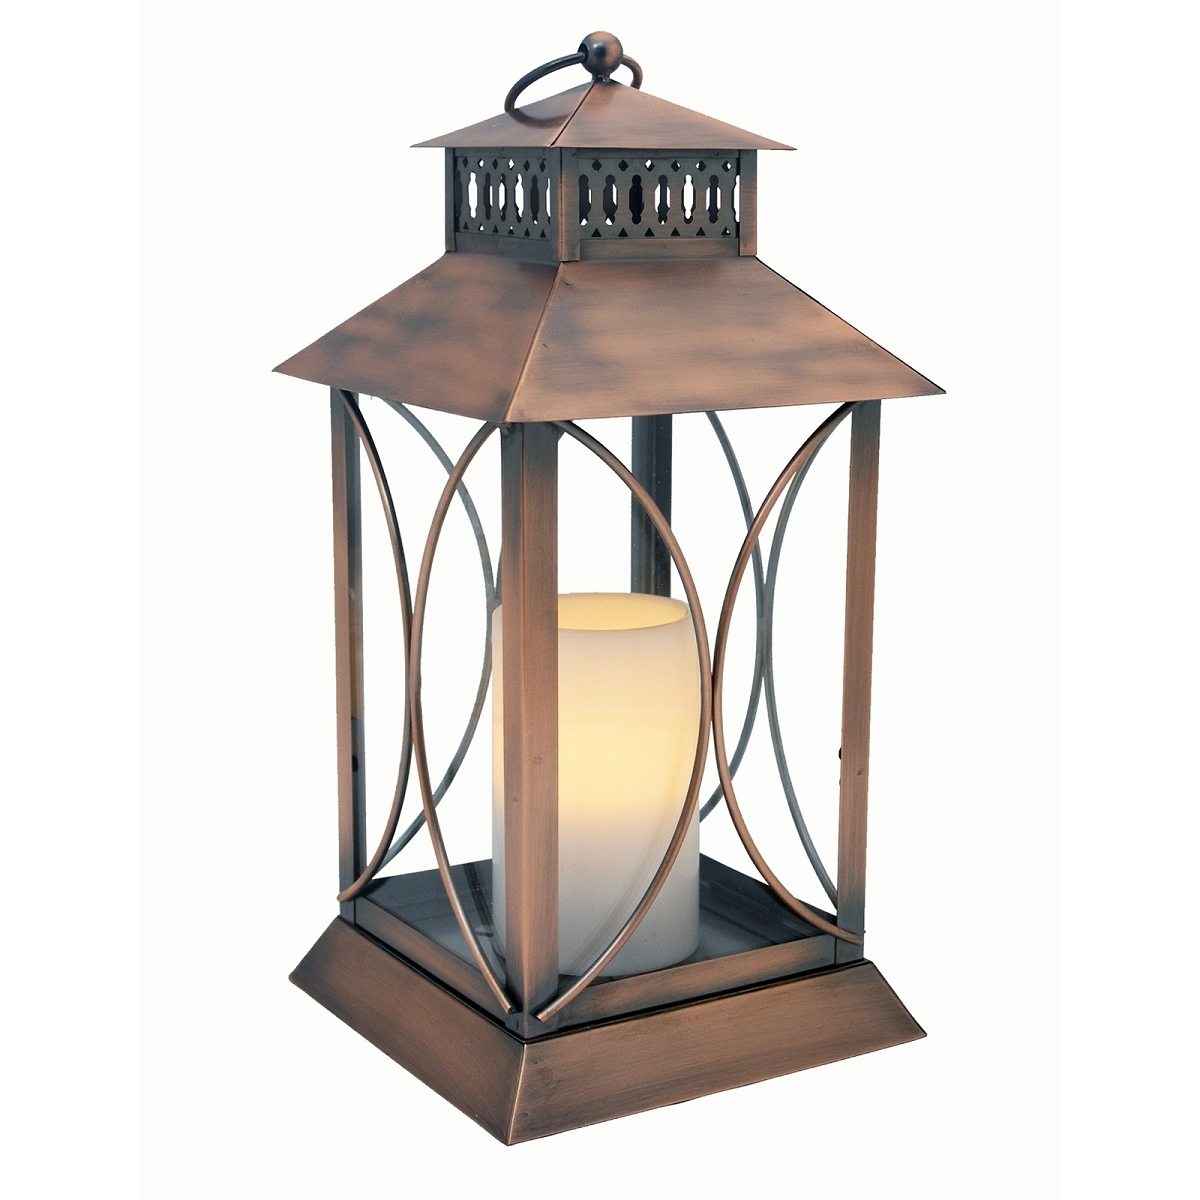 Outdoor Lanterns With Timers Pertaining To Most Current Neuporte Flameless Candle Lantern With Timer Indoor Outdoor (View 9 of 20)